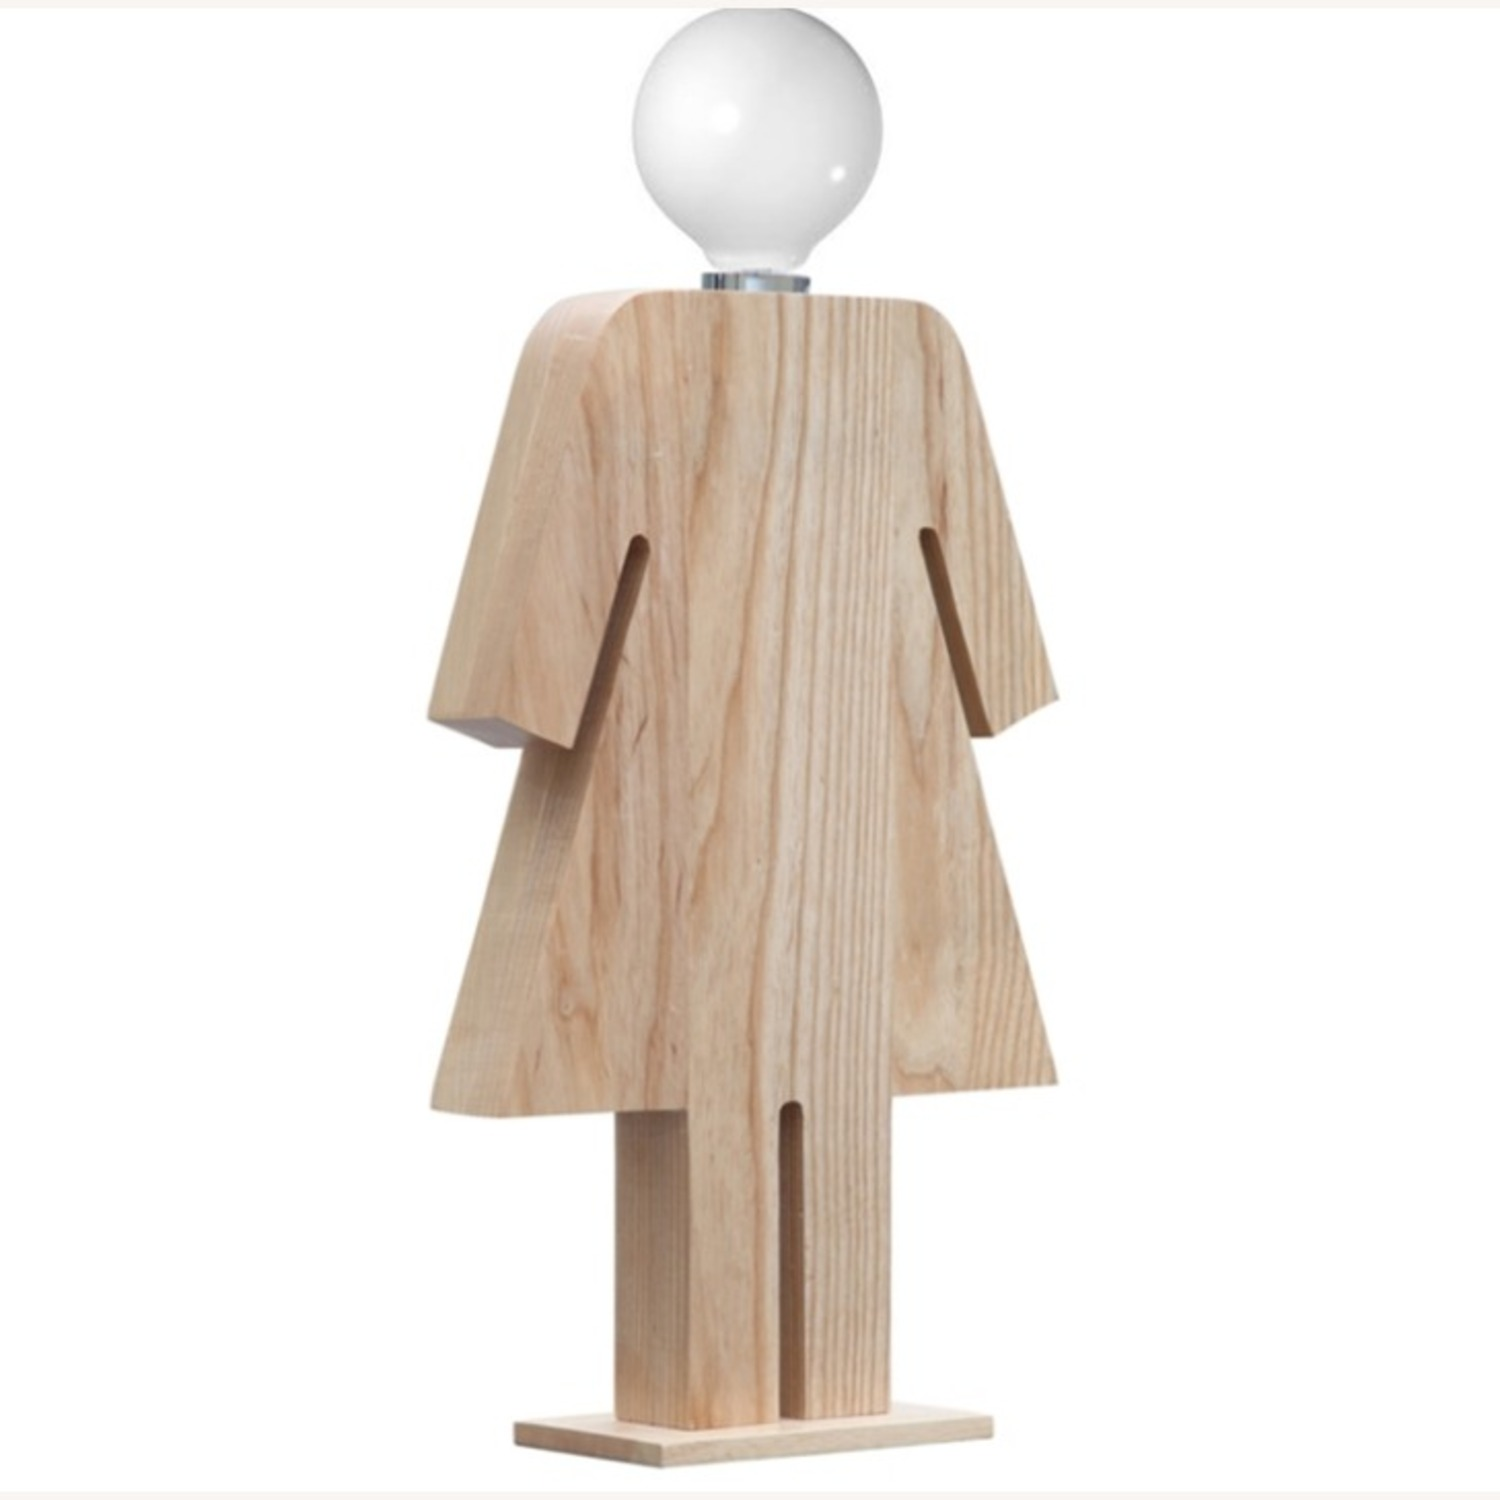 Table Lamp In Natural Wood W/ Female Person Design - image-1